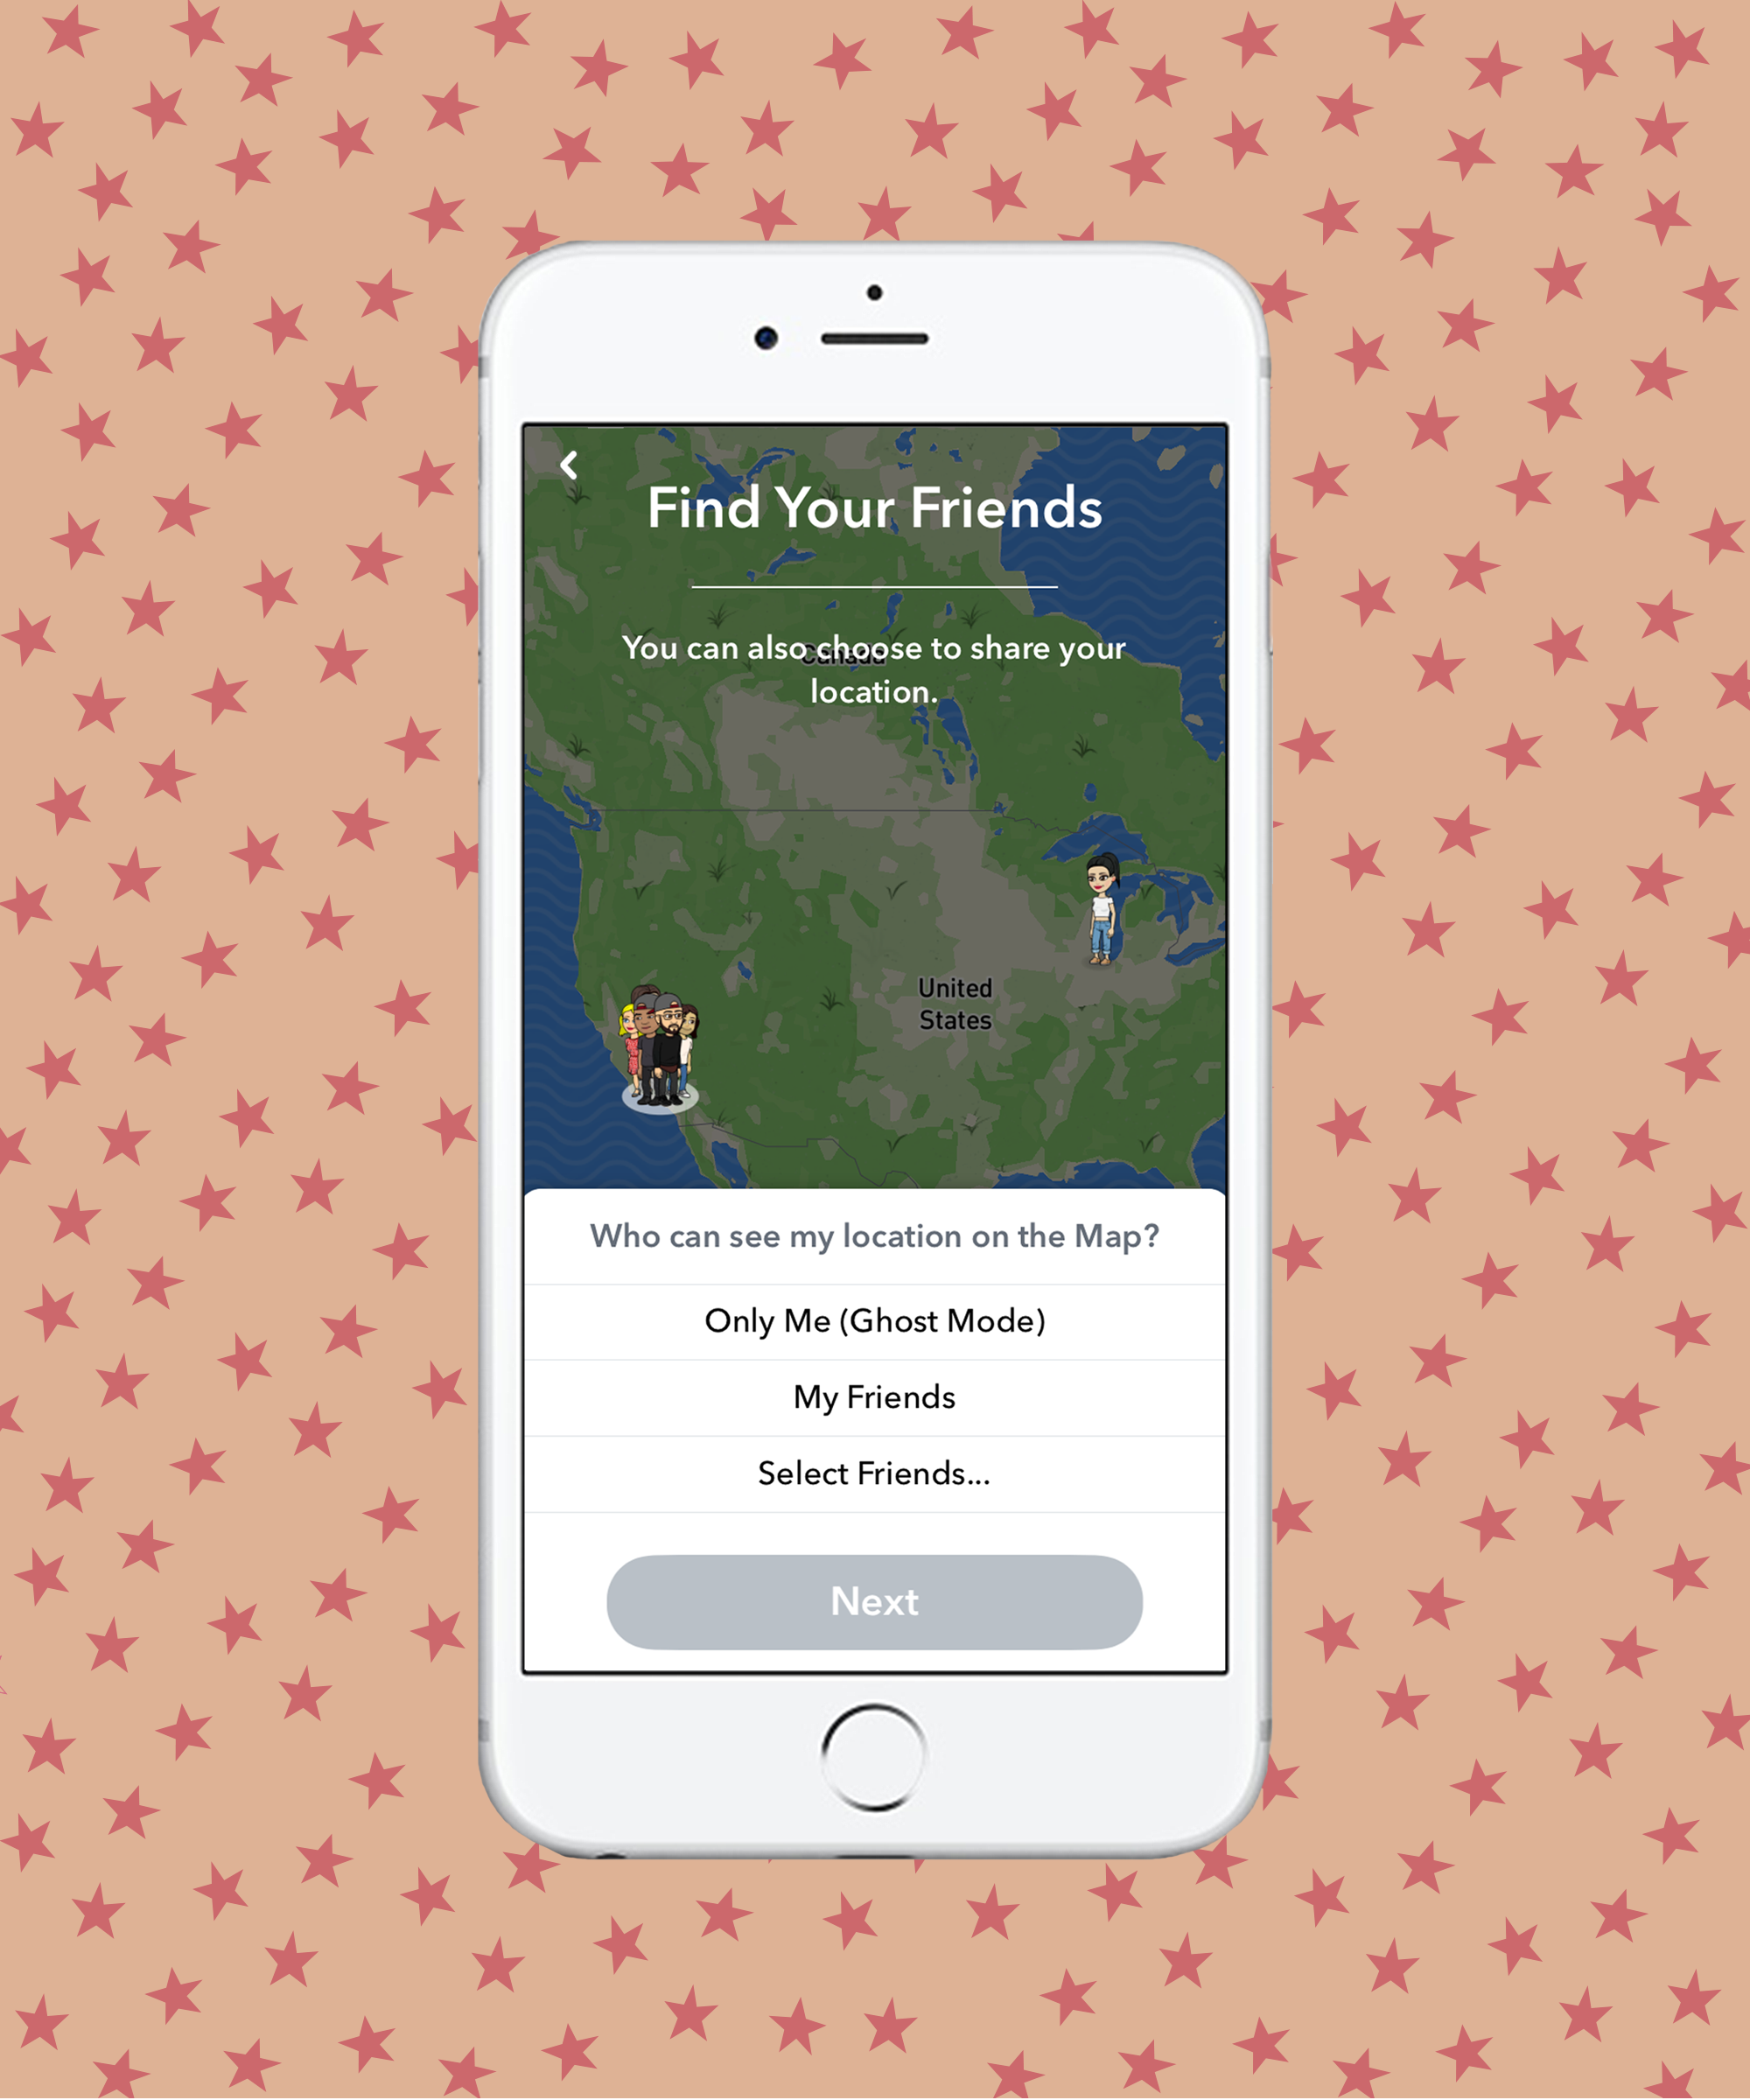 How To Use Snapchat Snap Map Find Friends Ghost Mode - Can i see a map of the united states